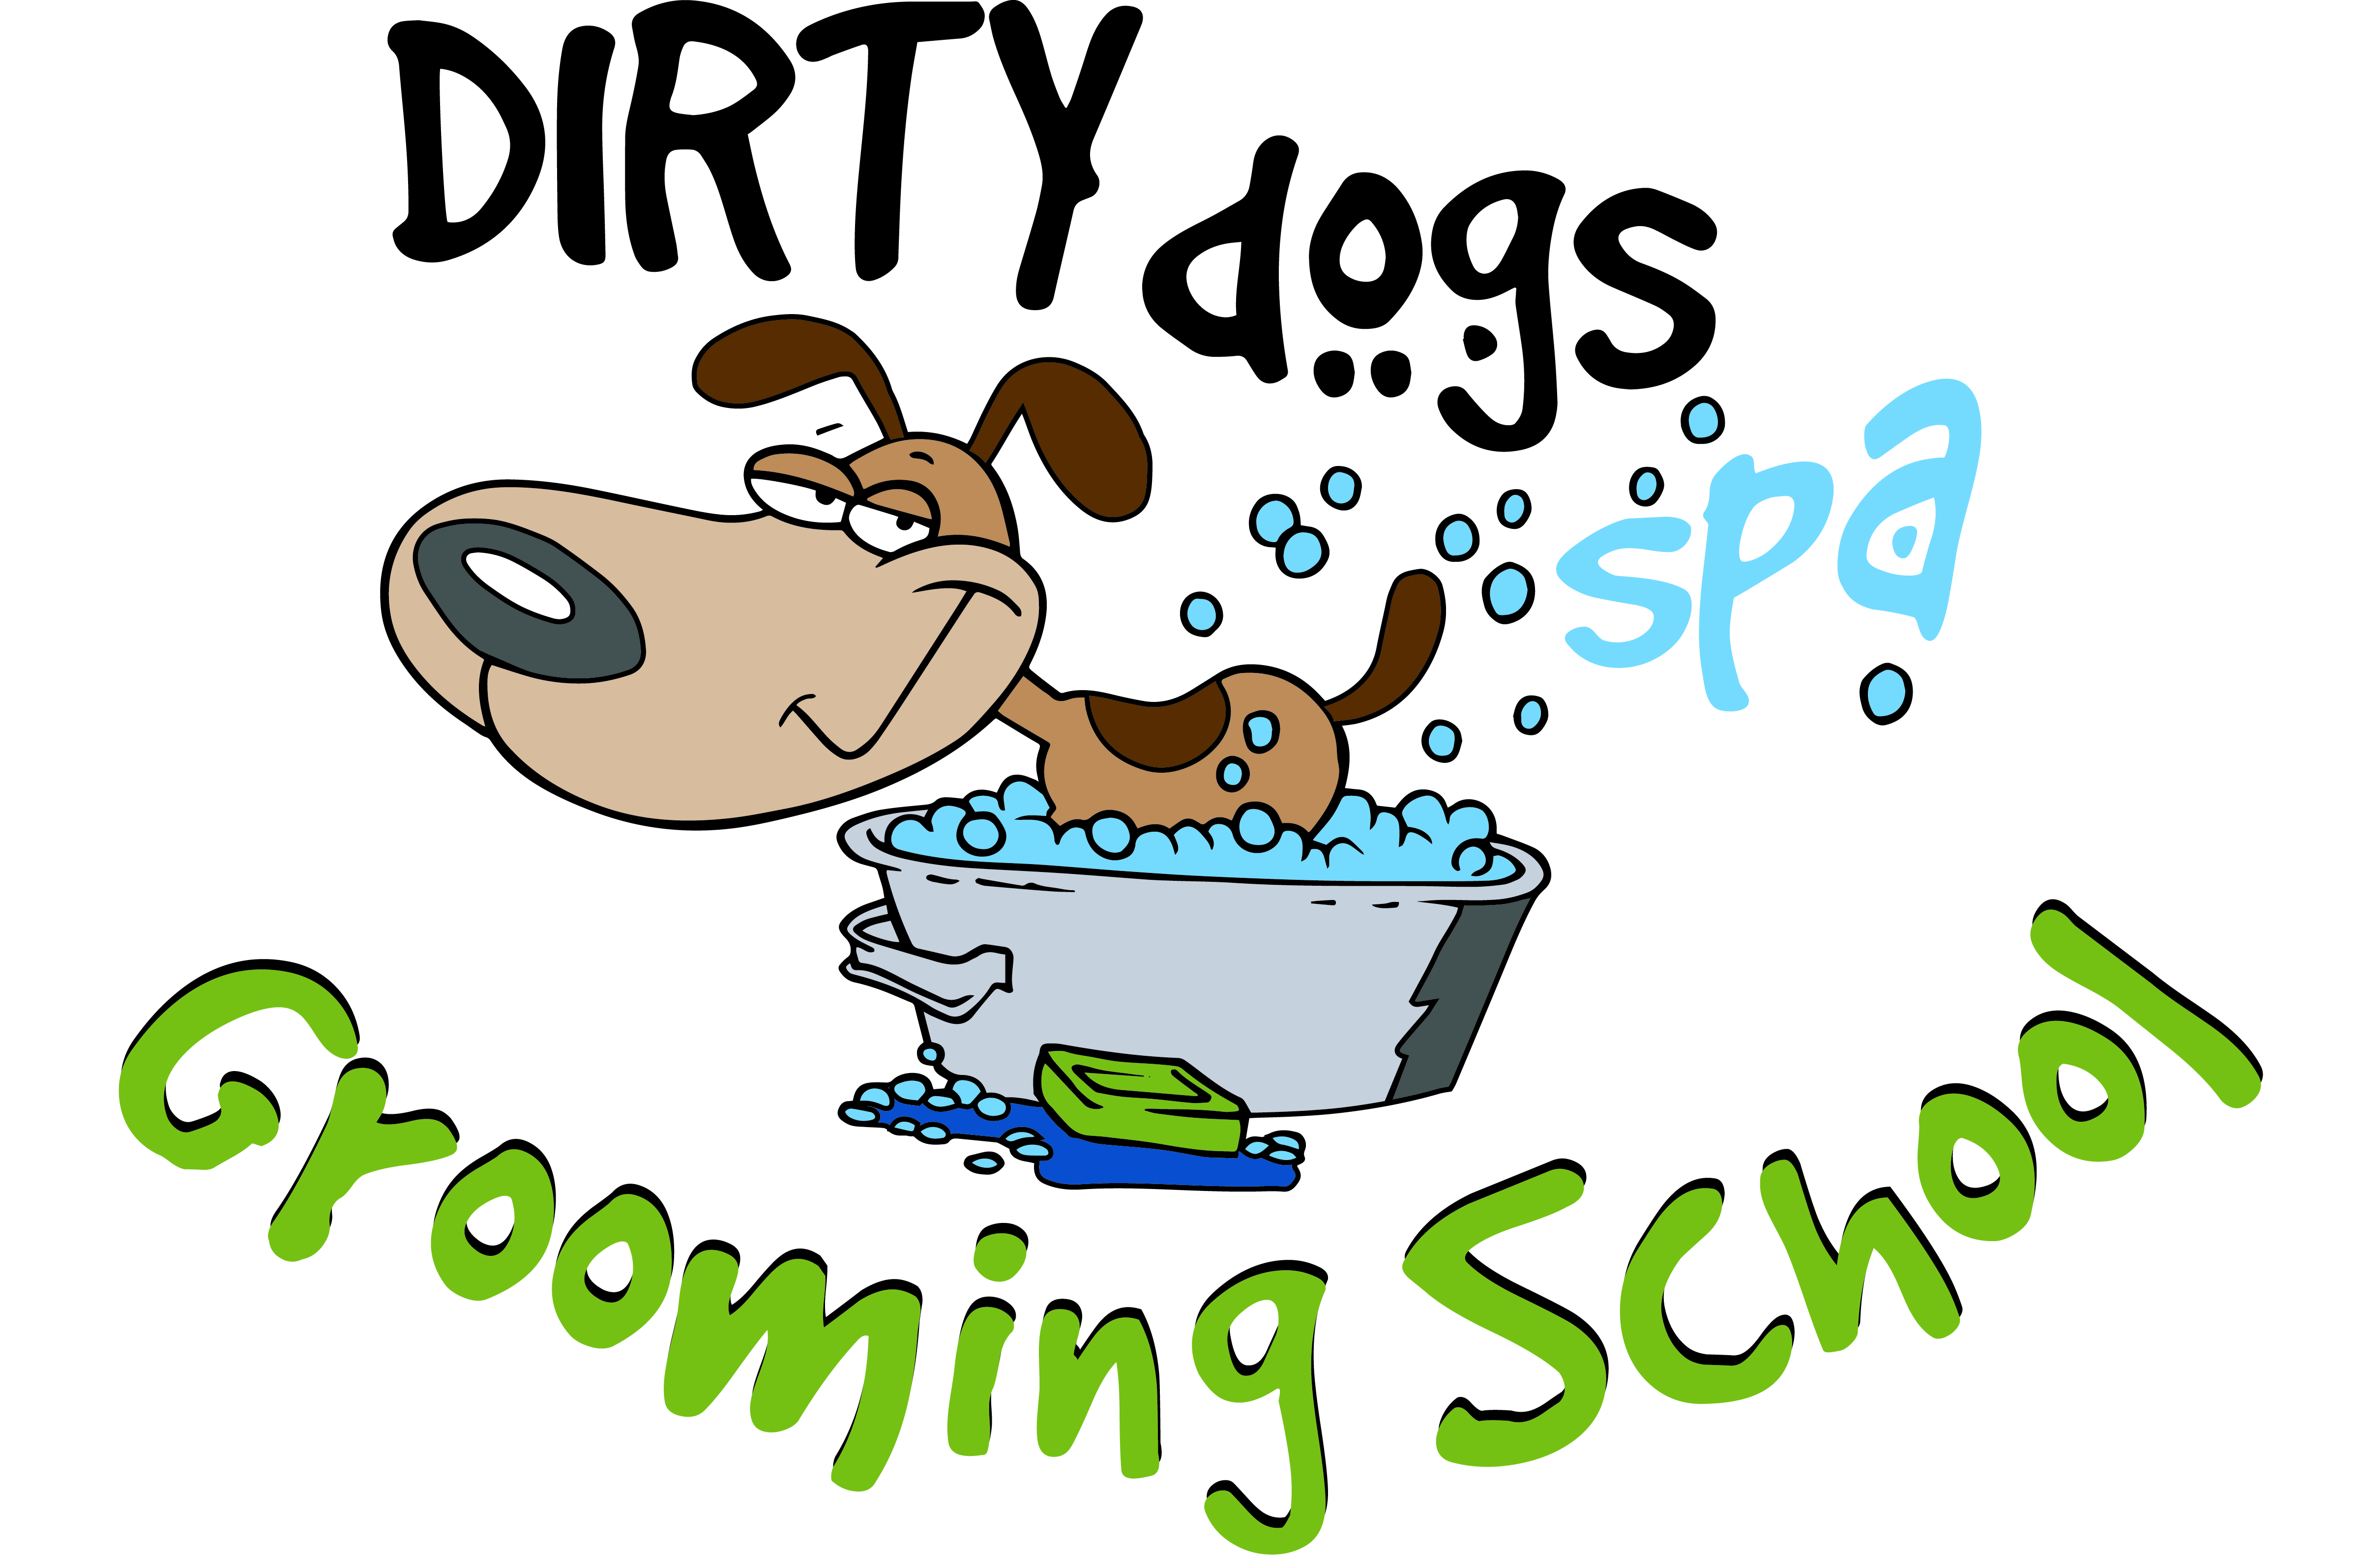 Dirty dogs spa school of grooming dirty dog dirty dog dirty dogs spa school of grooming solutioingenieria Image collections